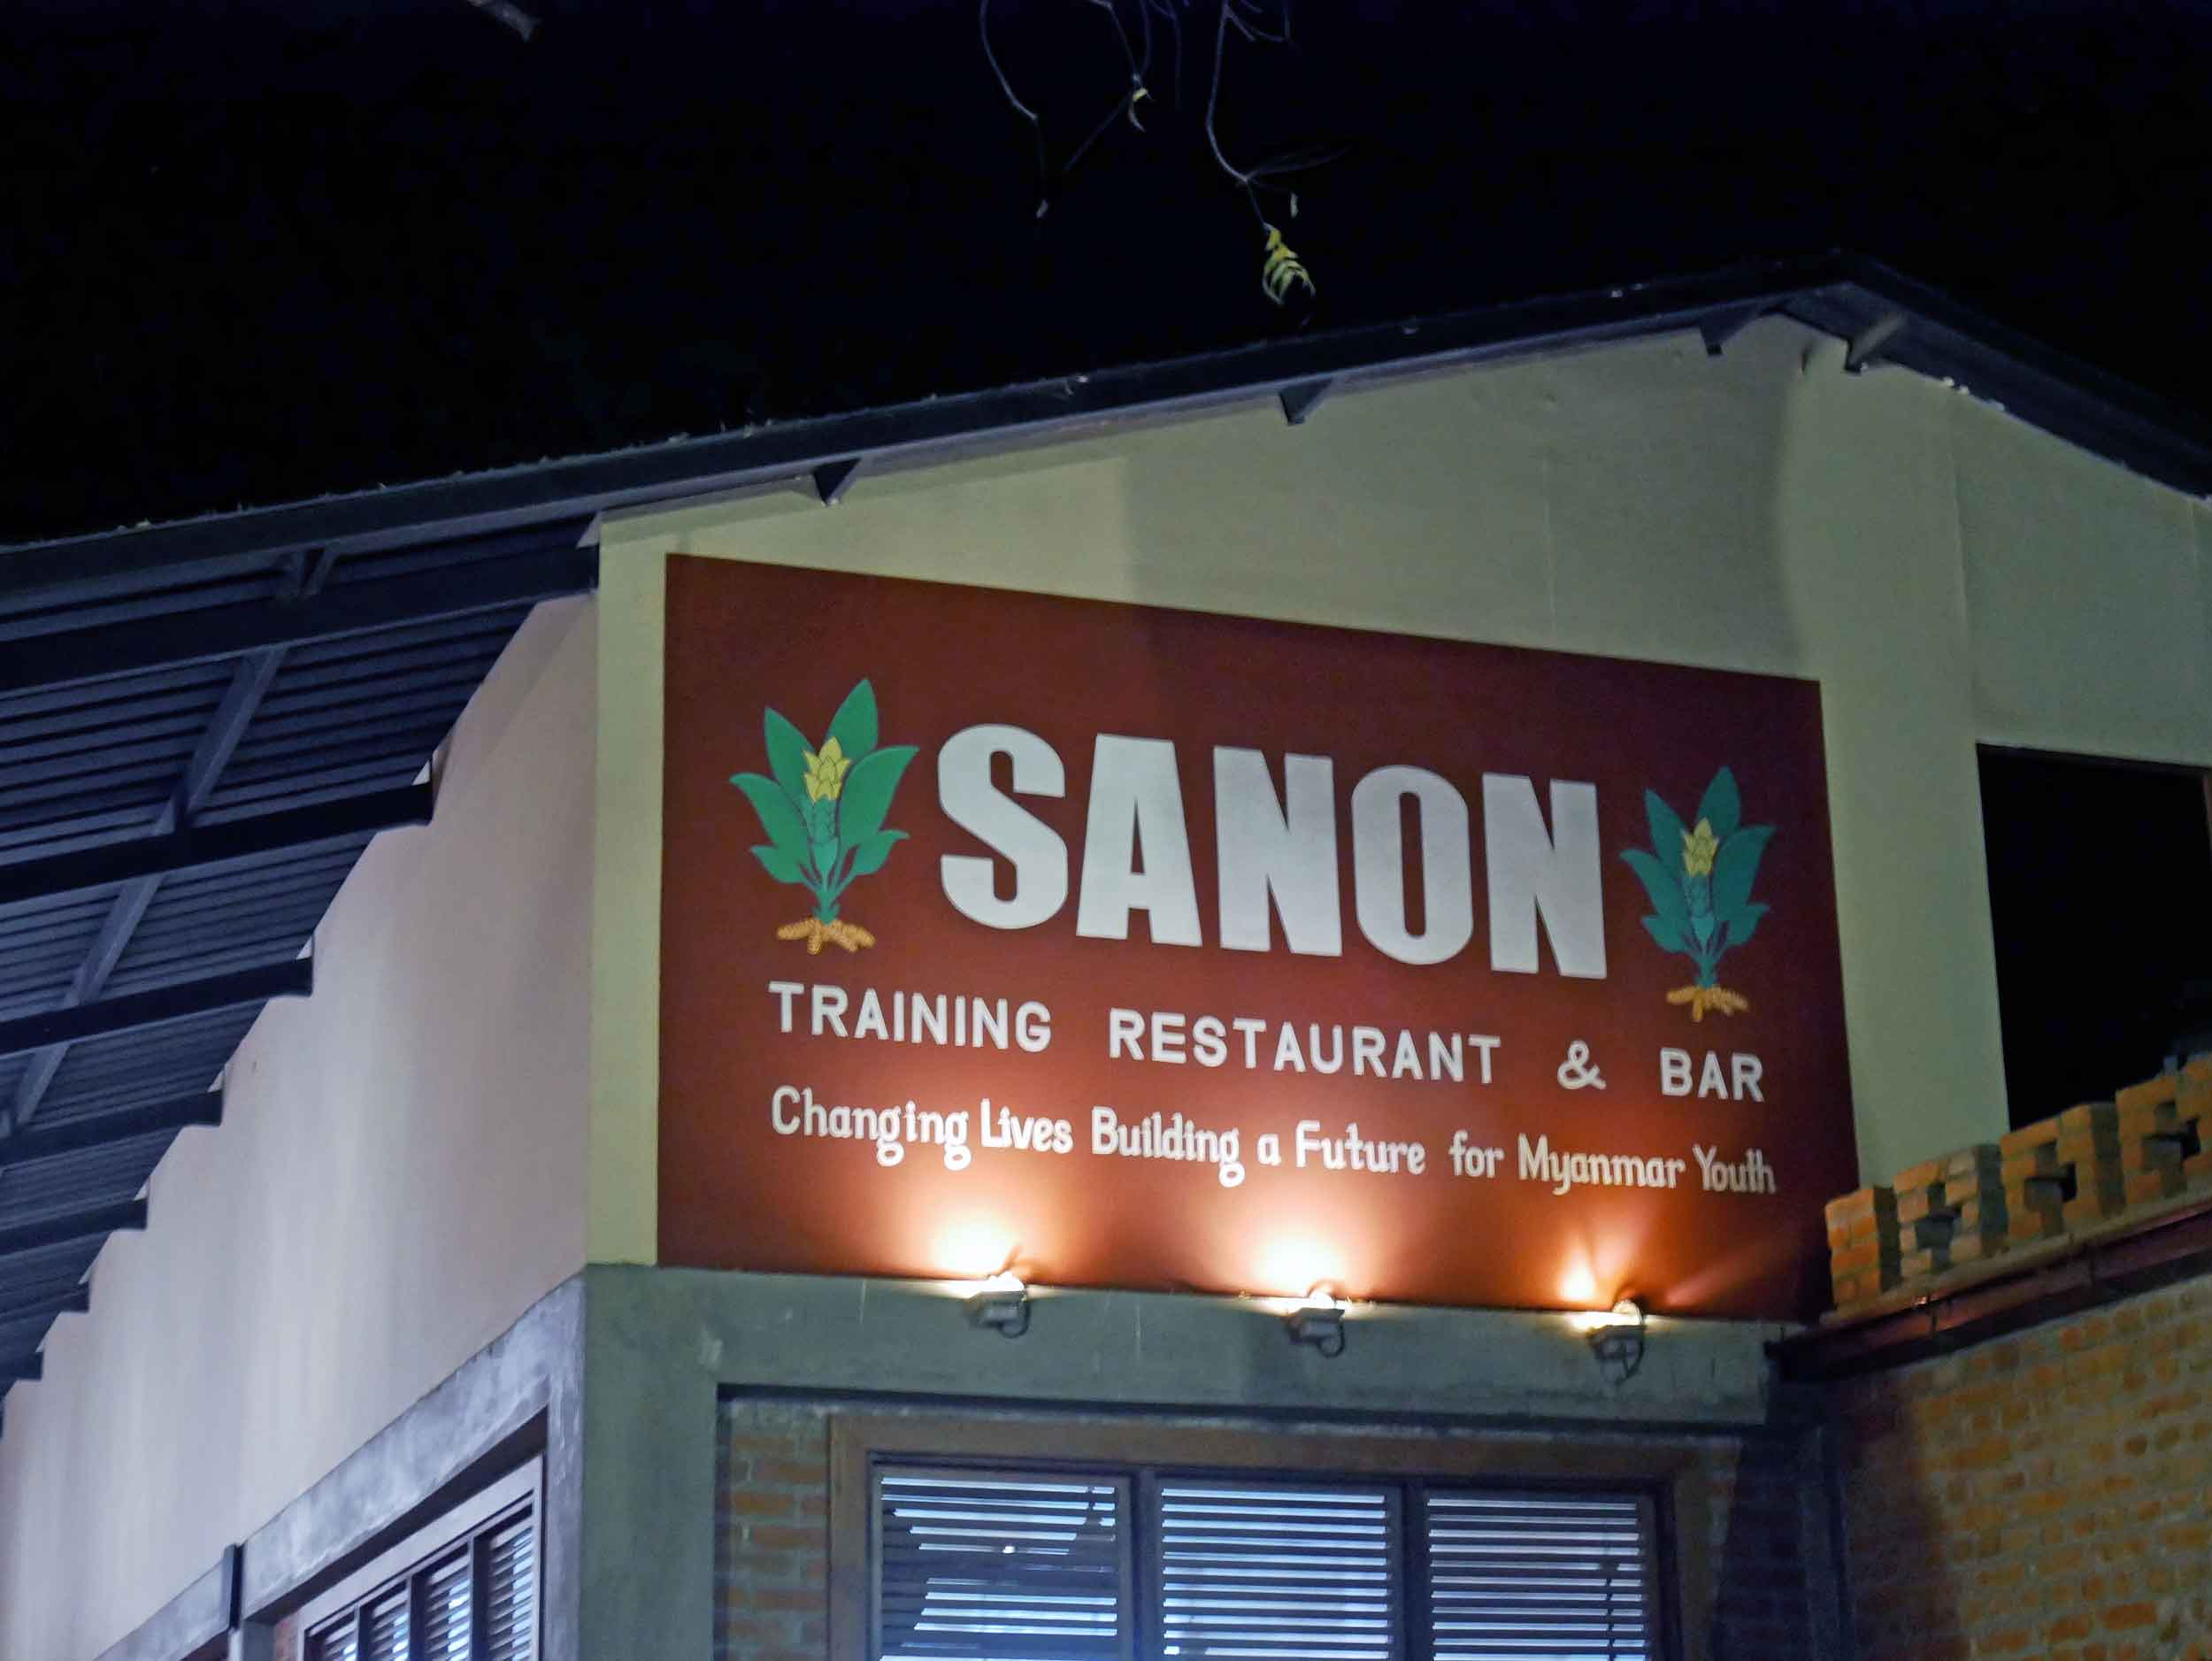 Sanon teaches students proper cooking techniques as well as hygiene, serving, and other hospitality skills.